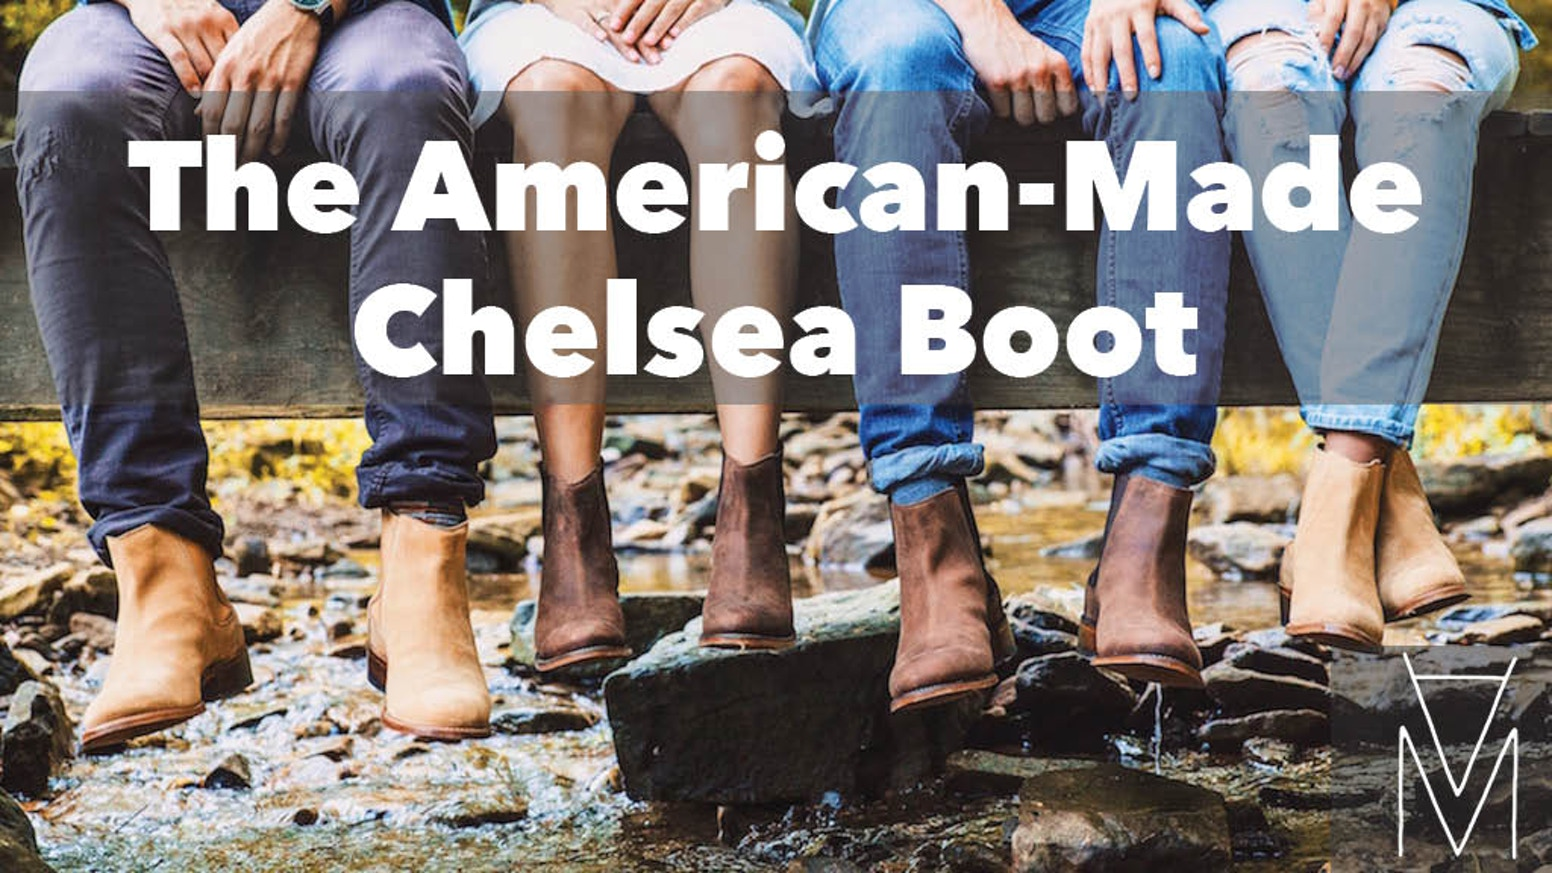 High-quality, affordable, classic Chelsea boots made in the USA. Handcrafted using the same process since 1948.